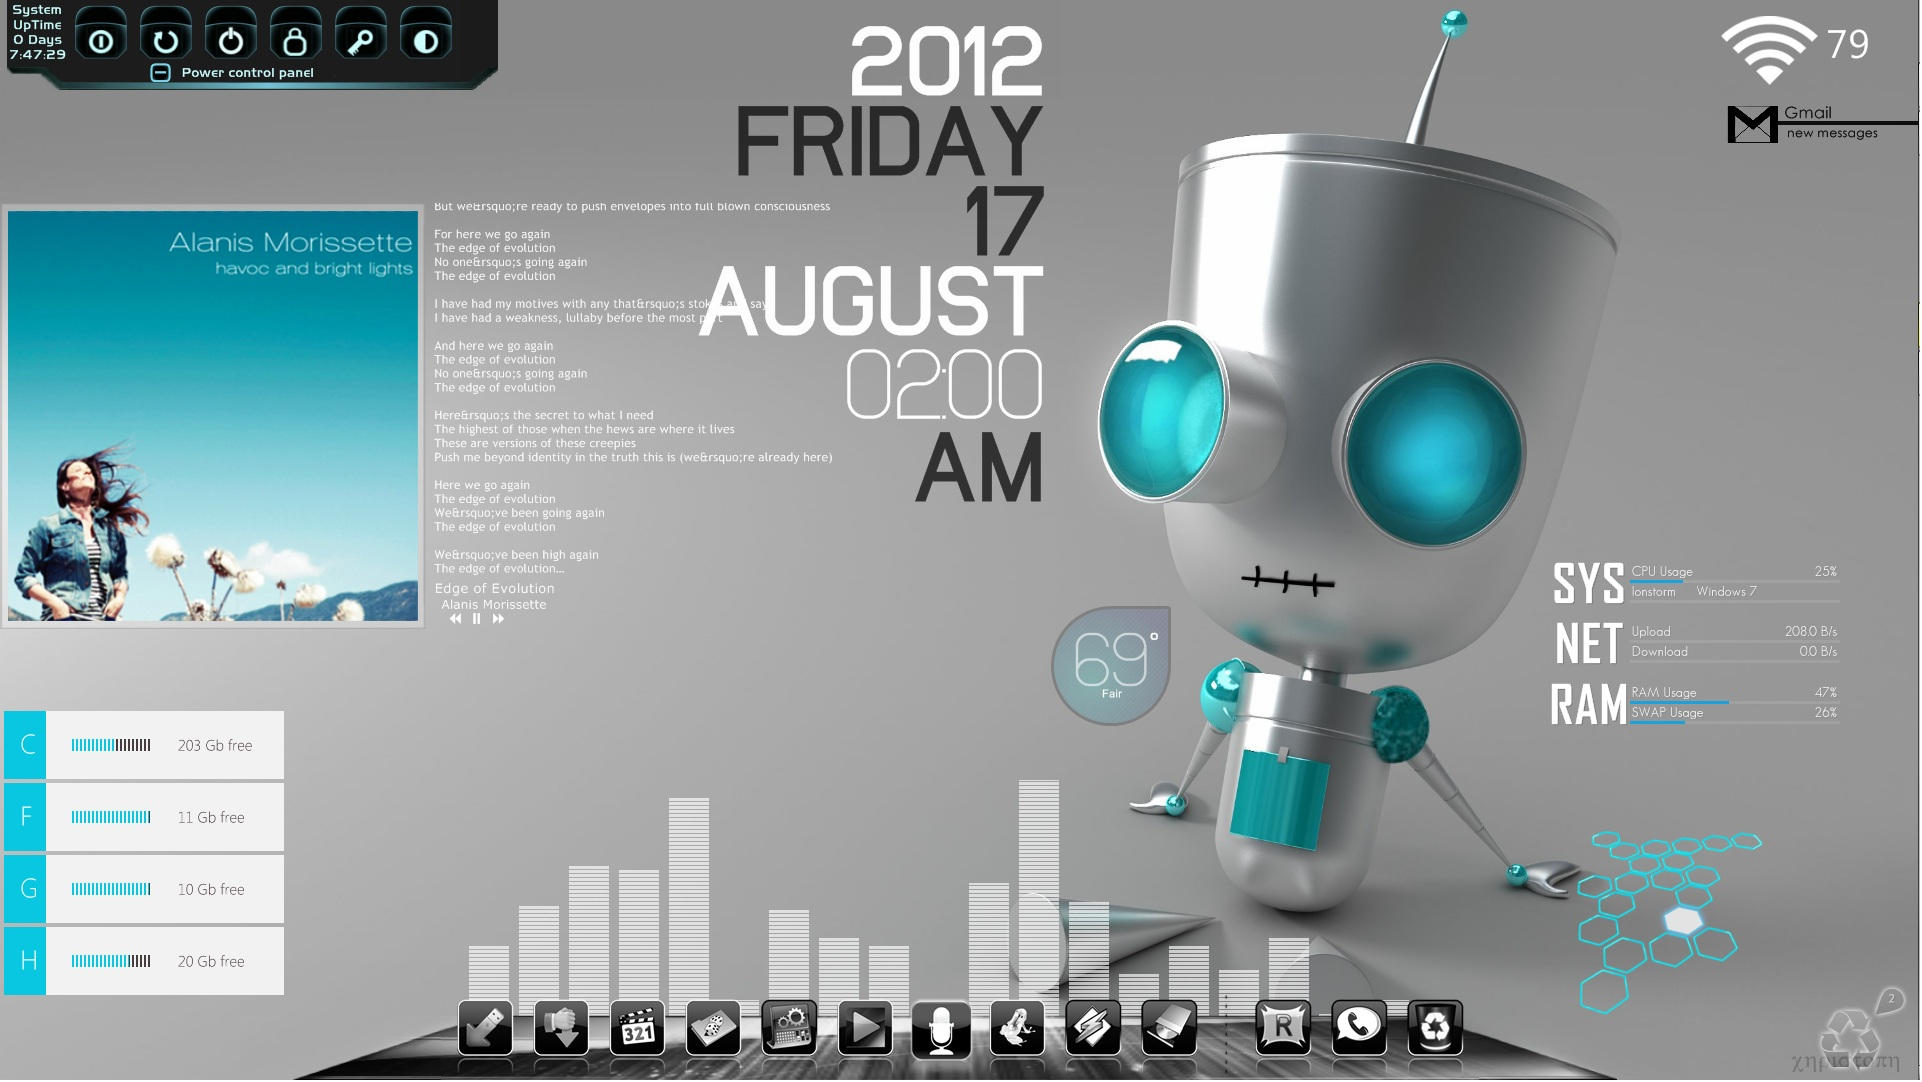 Gmail themes free download windows -  Chillin Bot Desktop V2 0 For Rainmeter By Ionstorm01